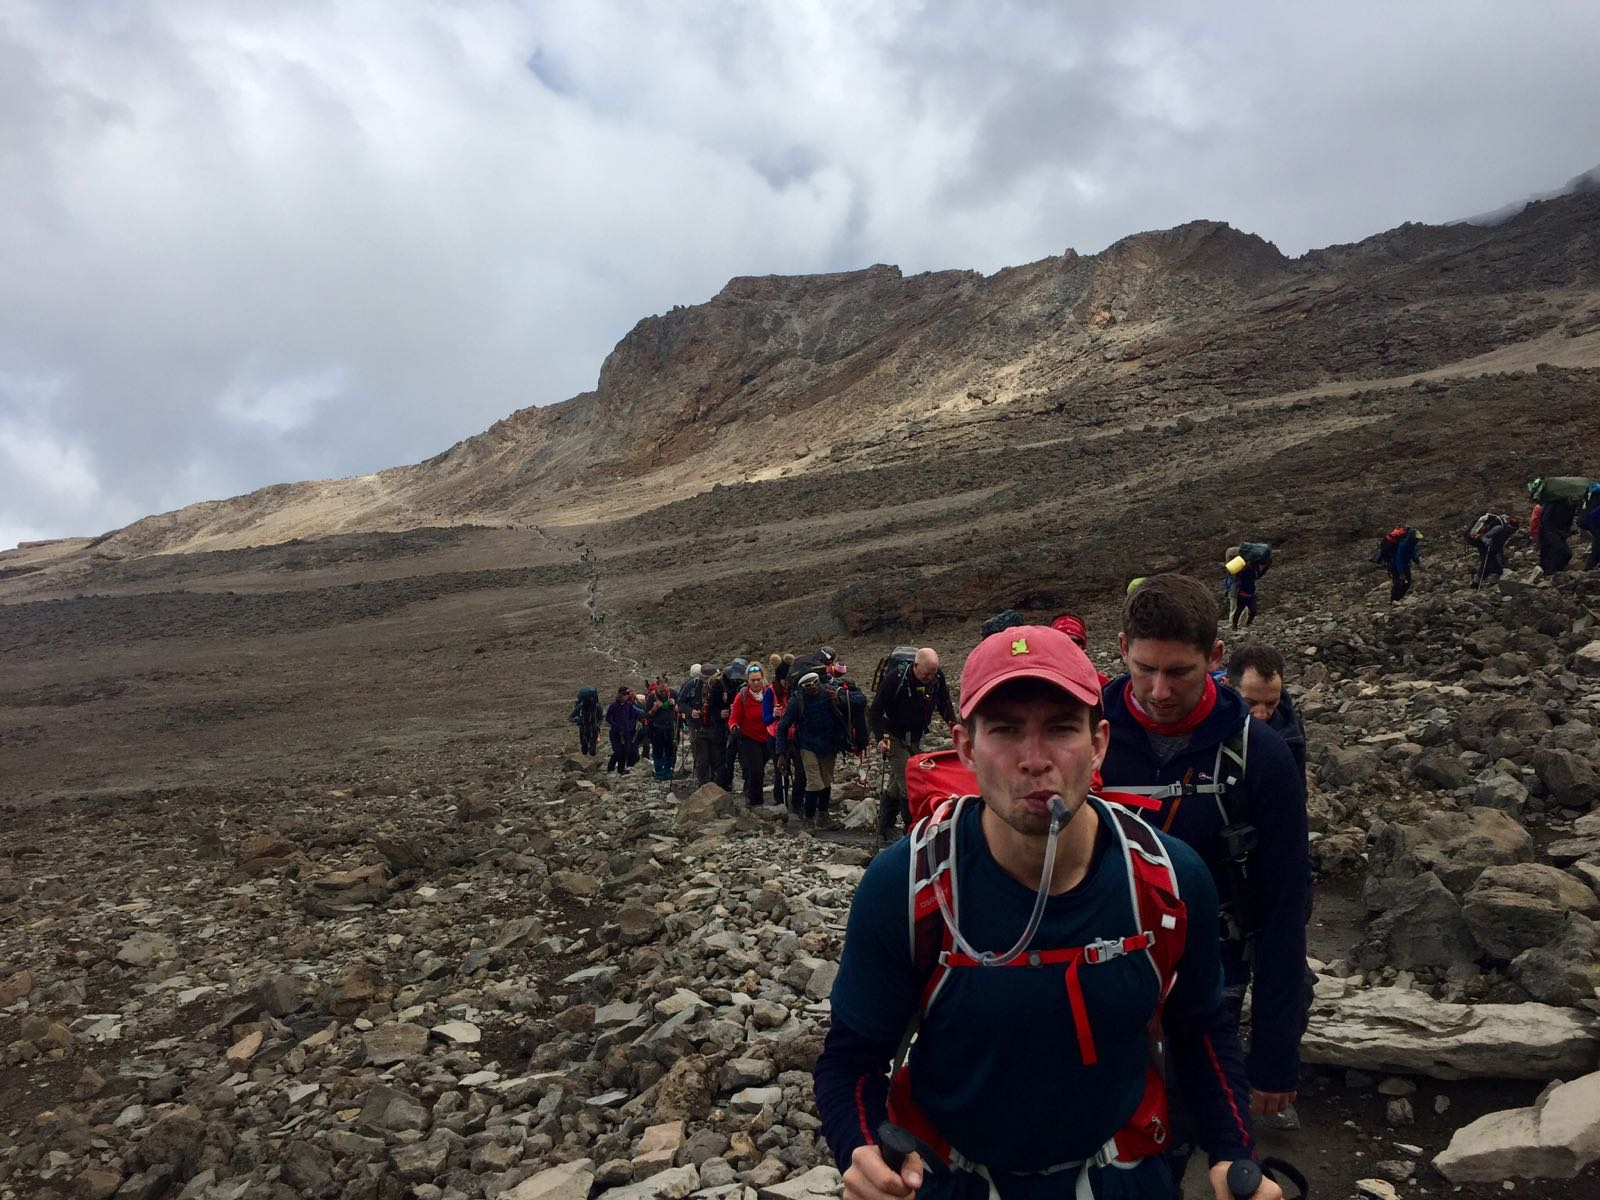 to Rory  - who pushed me to sign up,wake up and hike up Kilimanjaro.